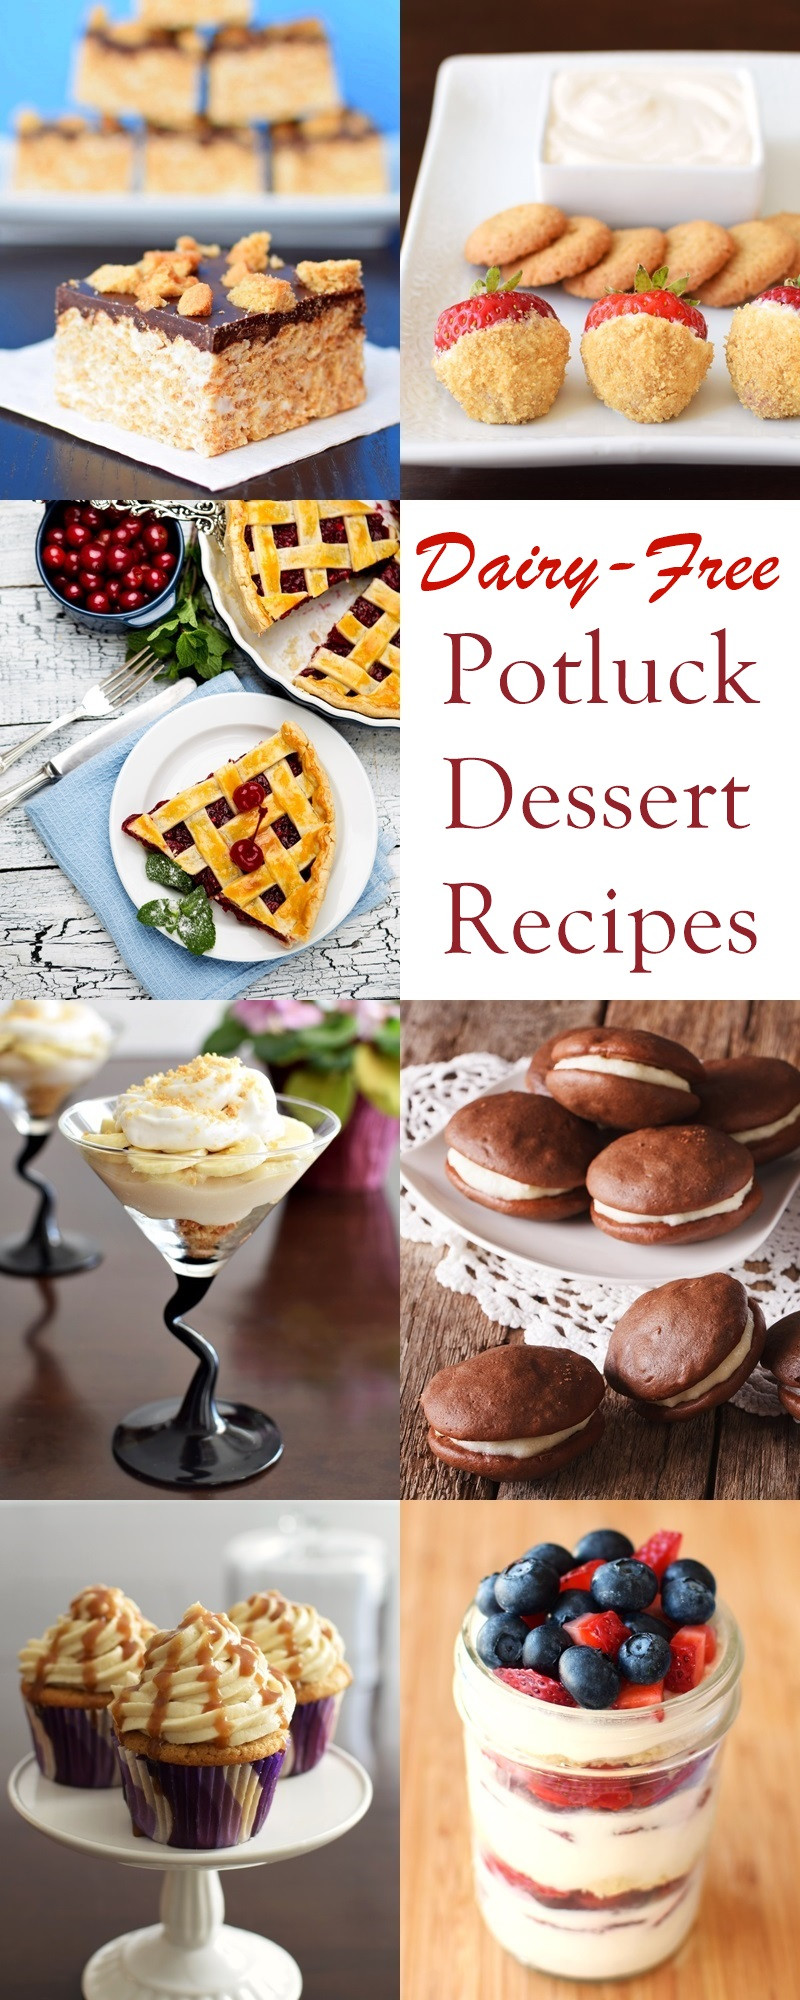 Dairy Free Soy Free Desserts  22 Dairy Free Potluck Dessert Recipes Everyone Will Love